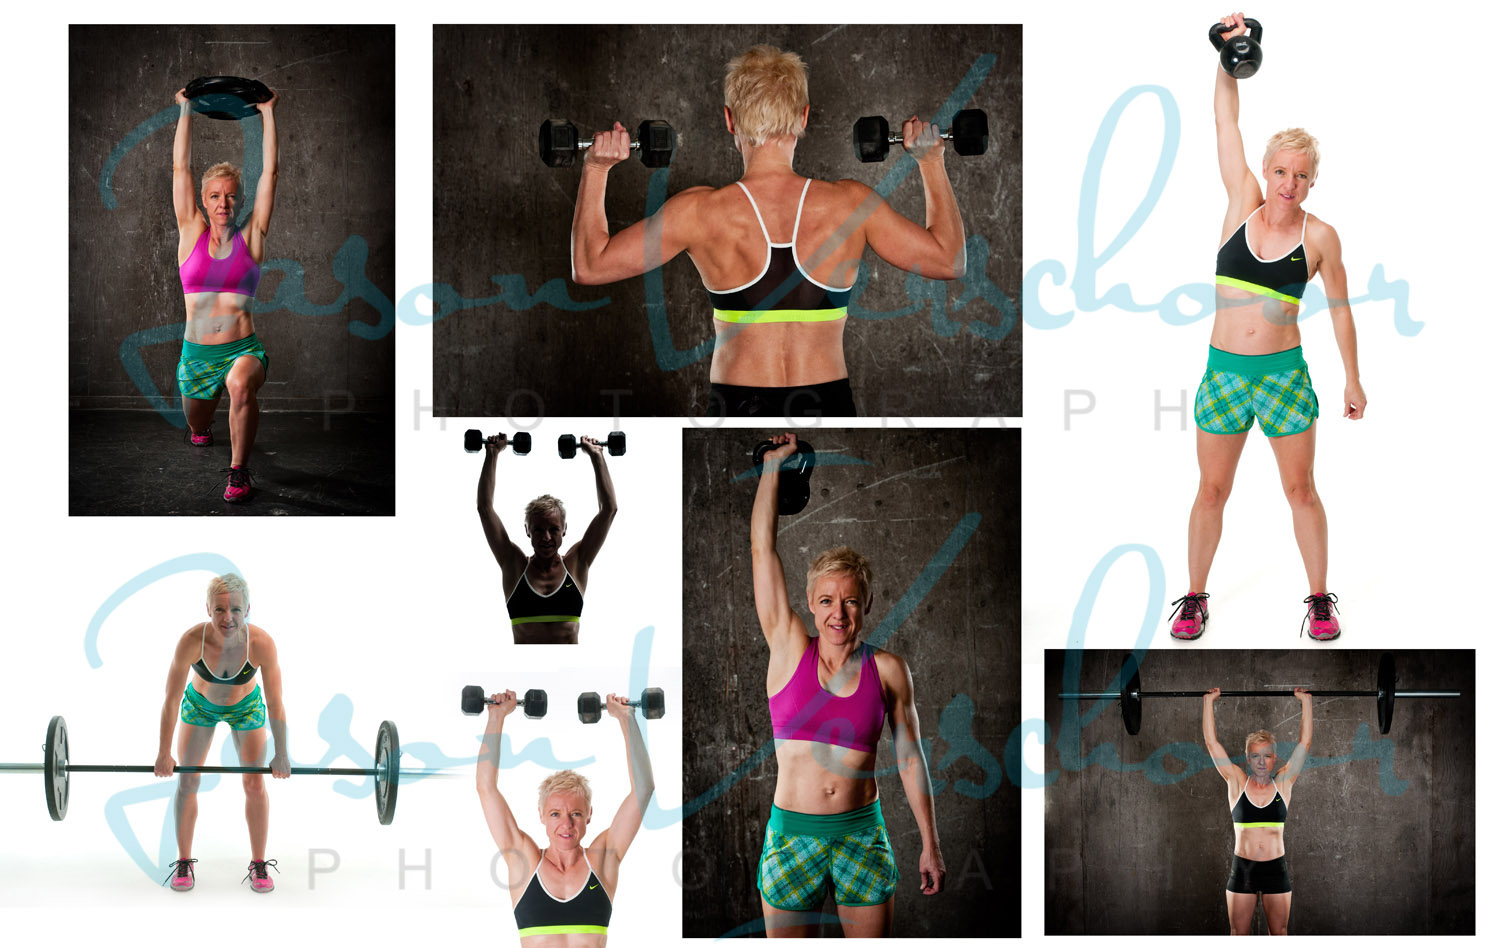 Compilation of a feel good fitness shoot in Calgary by photographer Jason Verschoor